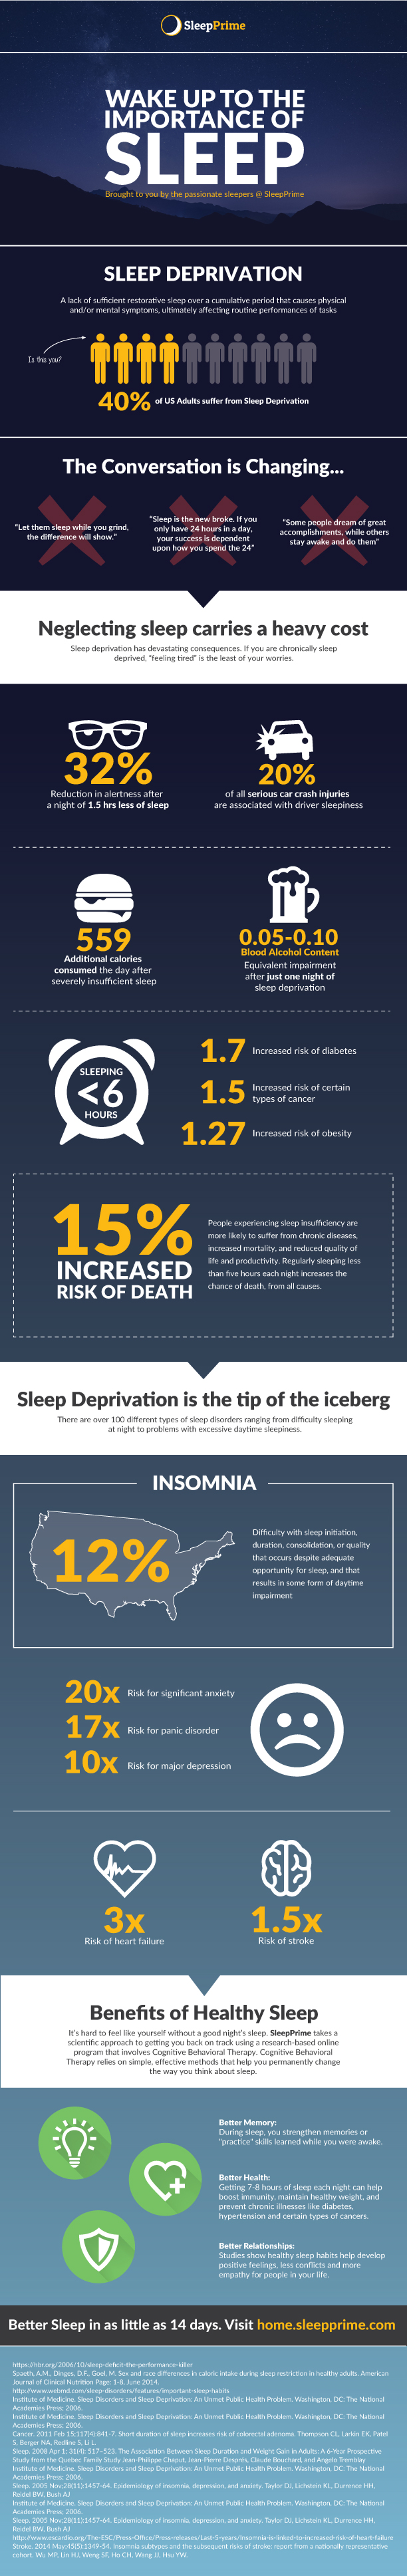 Wake Up to the Importance of Sleep